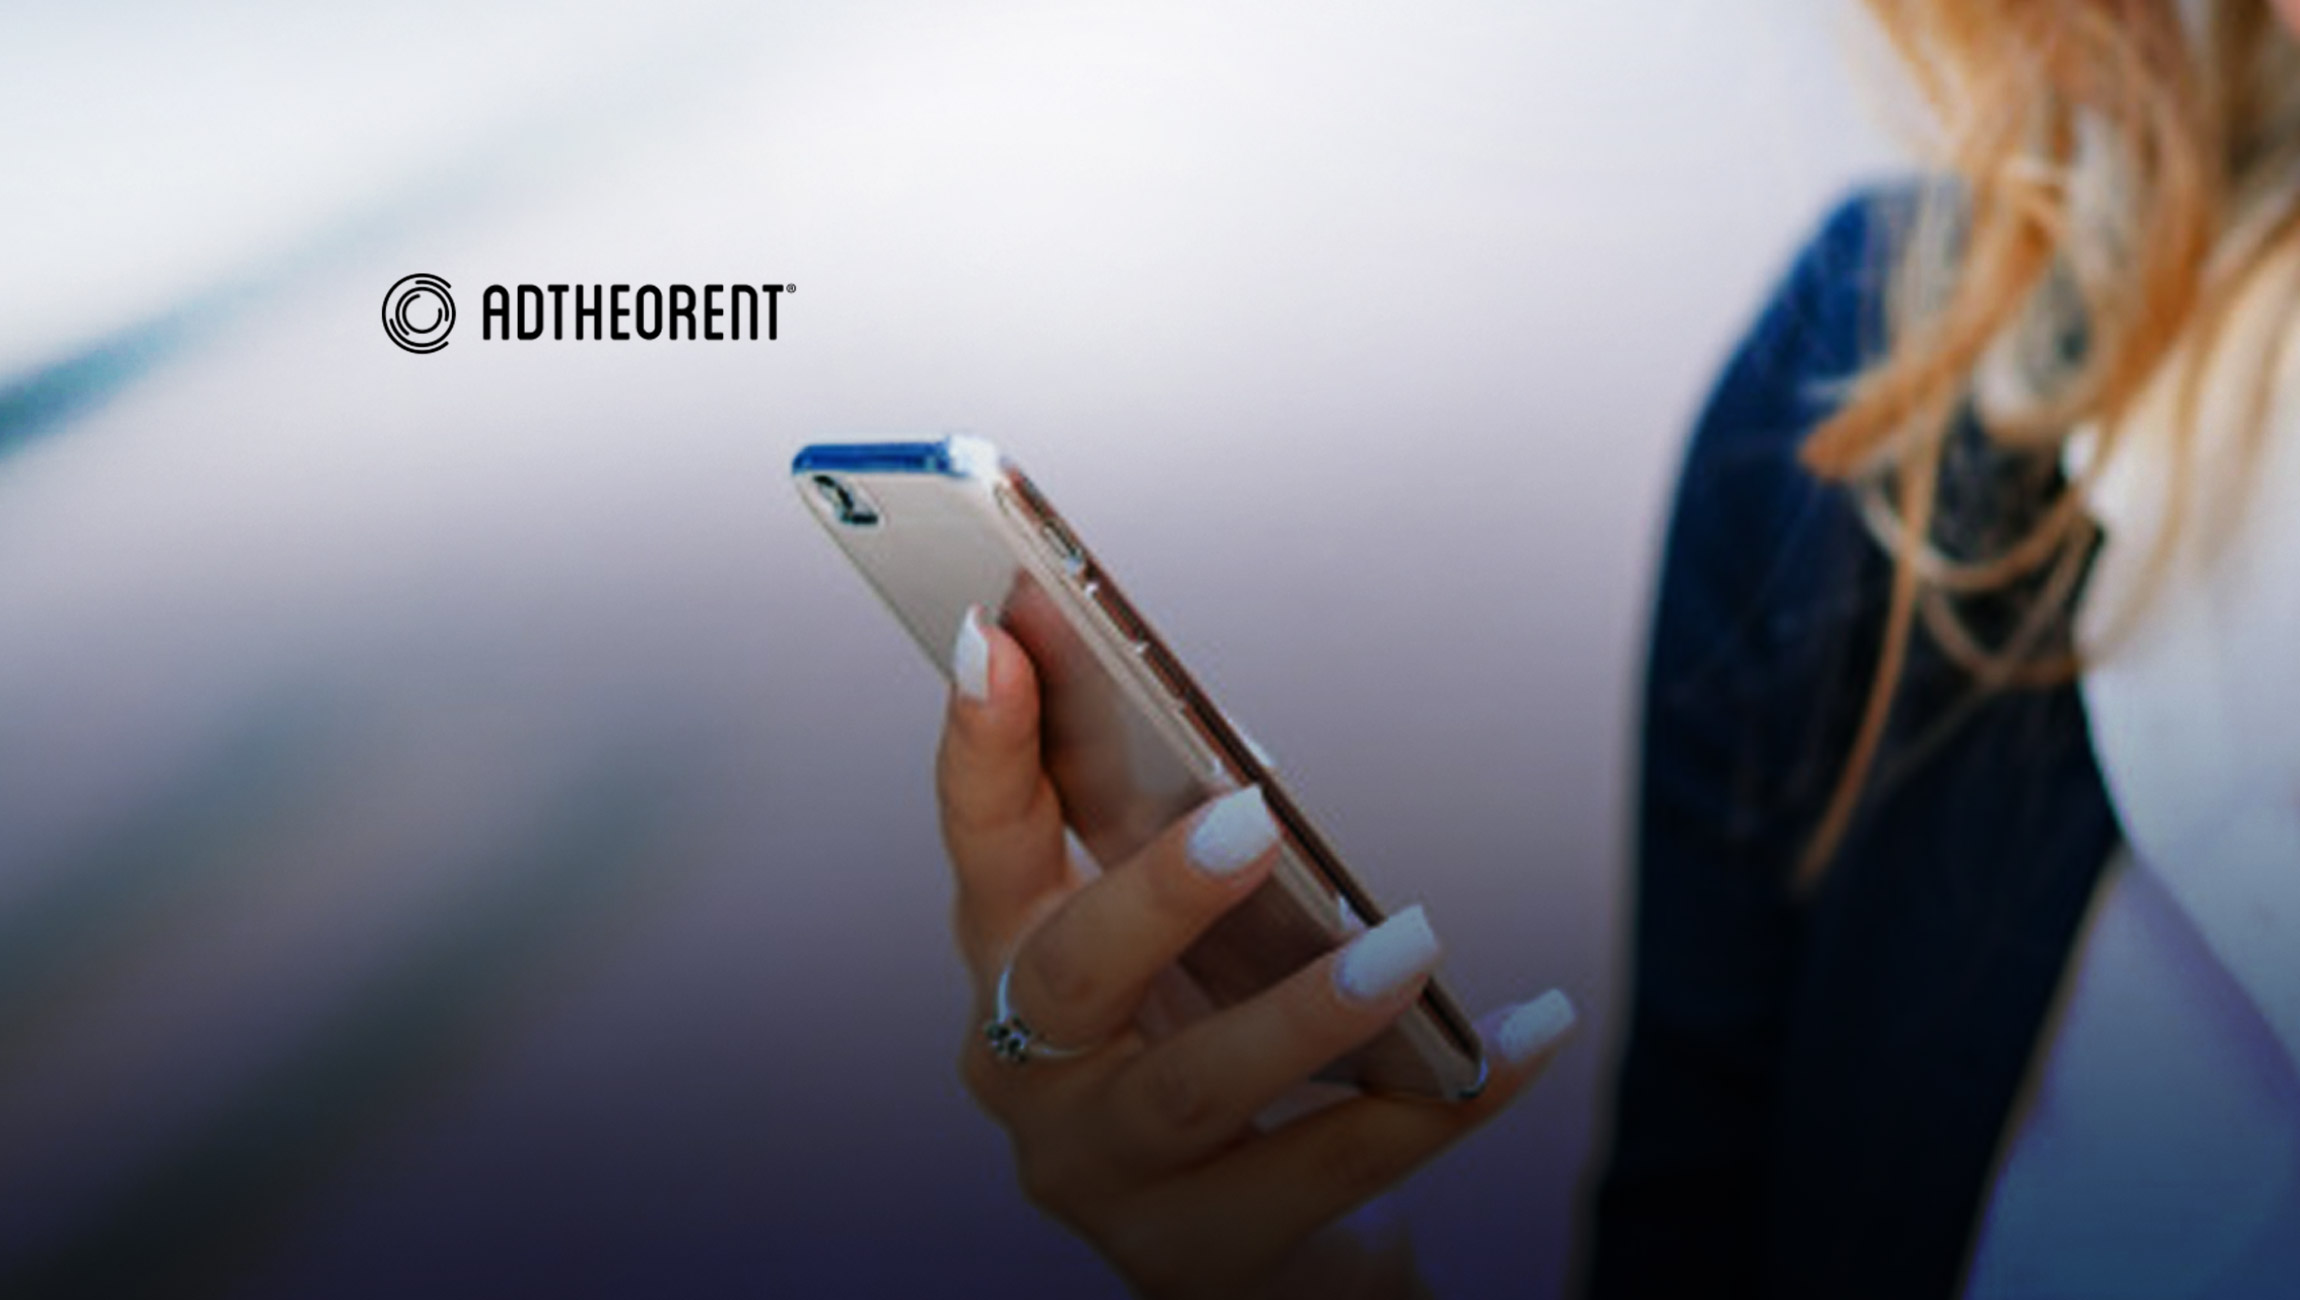 AdTheorent-Lauded-by-Frost-_-Sullivan-for-Driving-the-Next-Generation-of-Digital-Advertising-Strategies